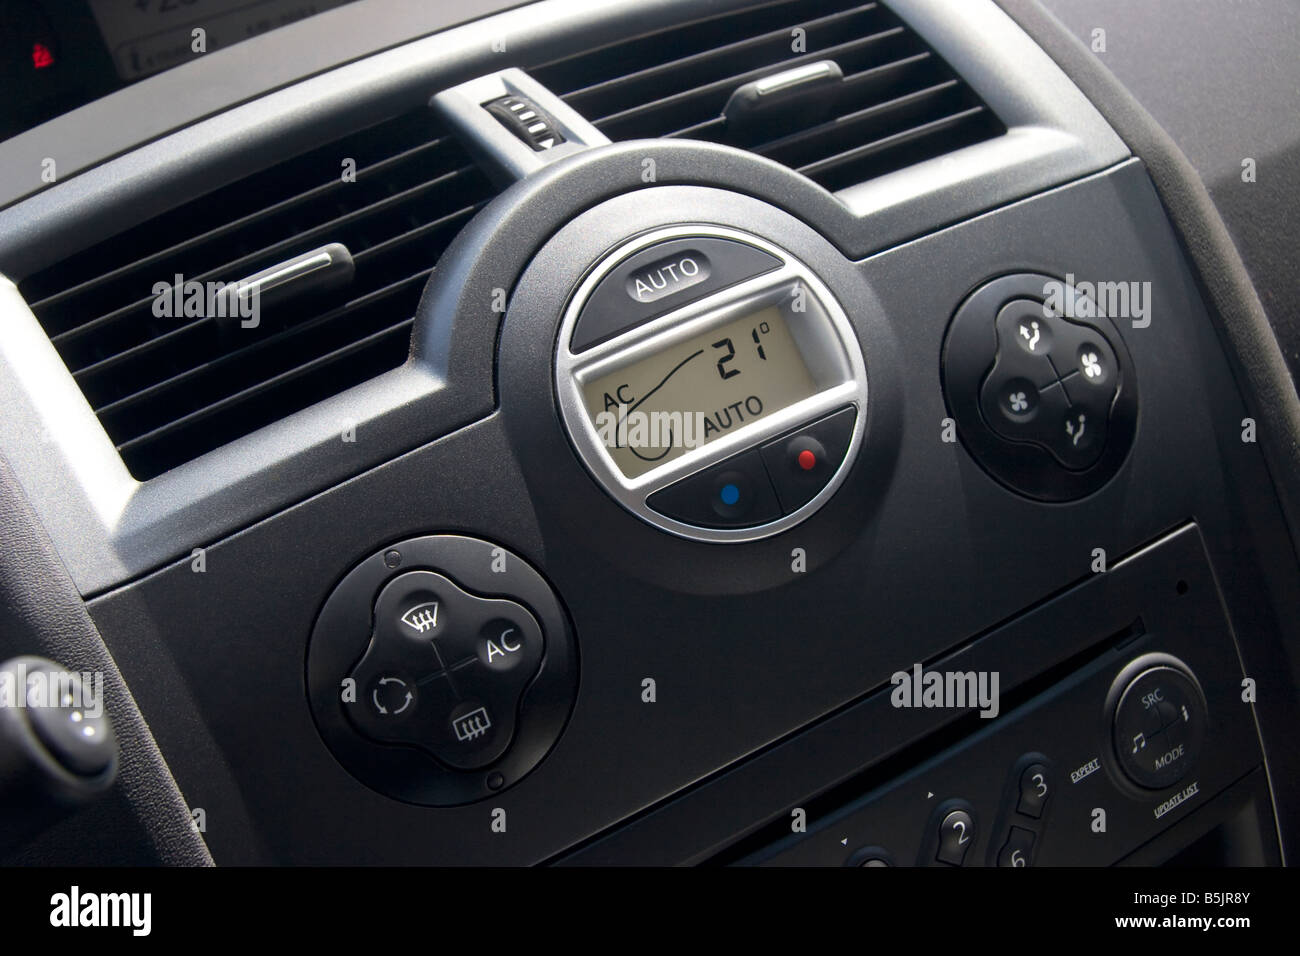 Car interior with climat control and display - Stock Image